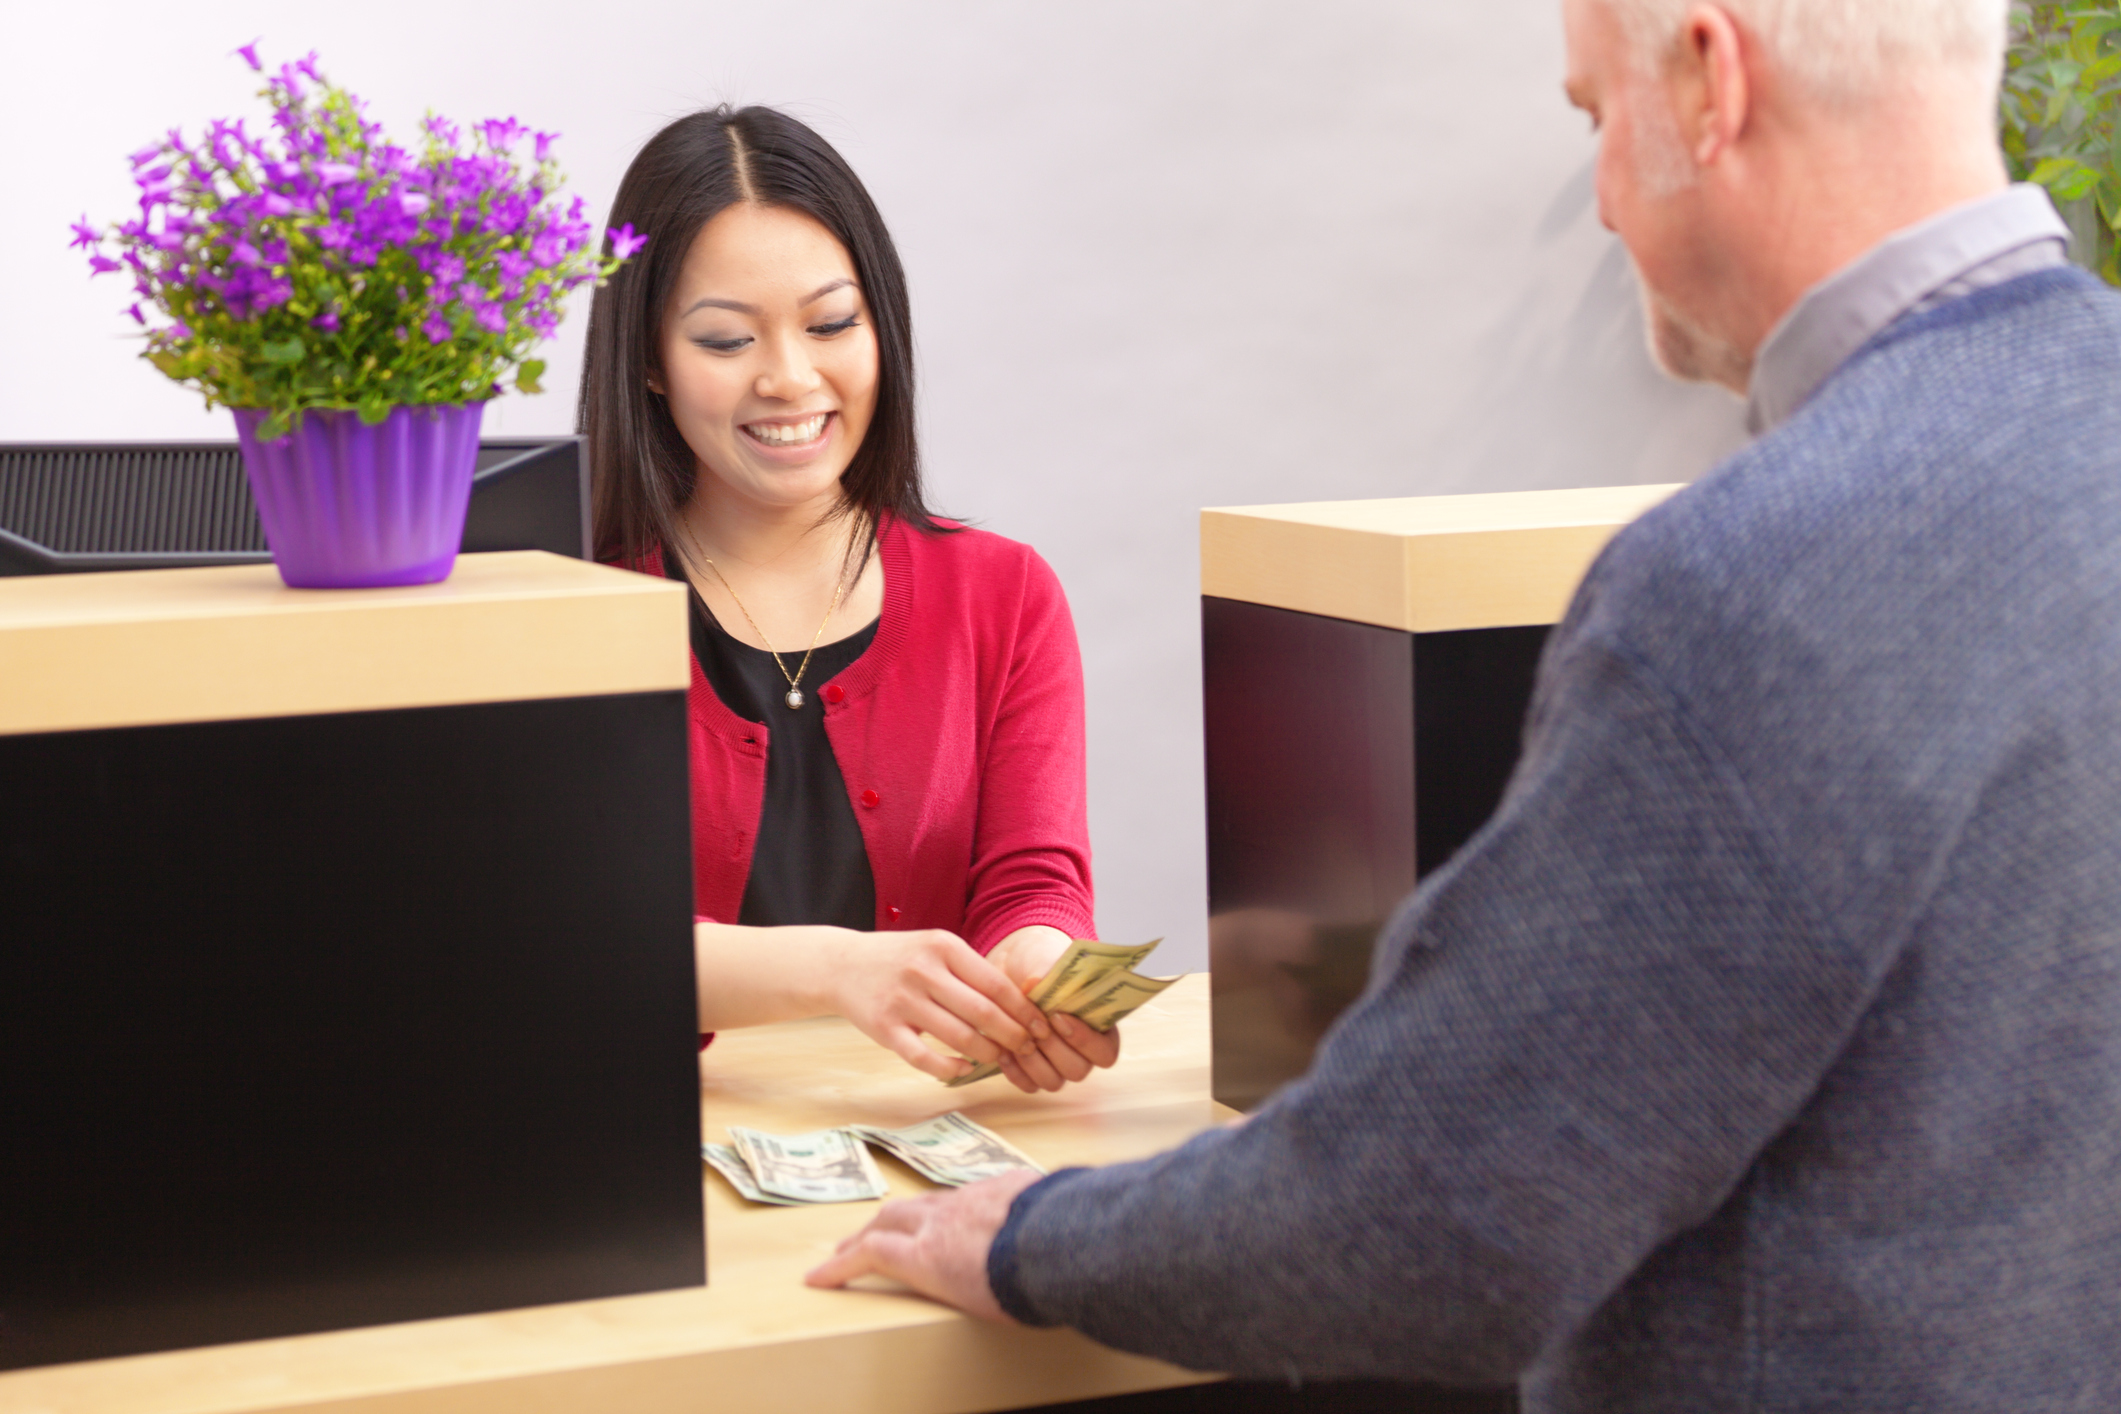 An adult man bank customer making a financial transaction with a bank teller over the counter in a retail bank. The woman Asian bank teller is smiling and cheerfully providing the customer service. Photographed behind the shoulder of the customer in a horizontal format.